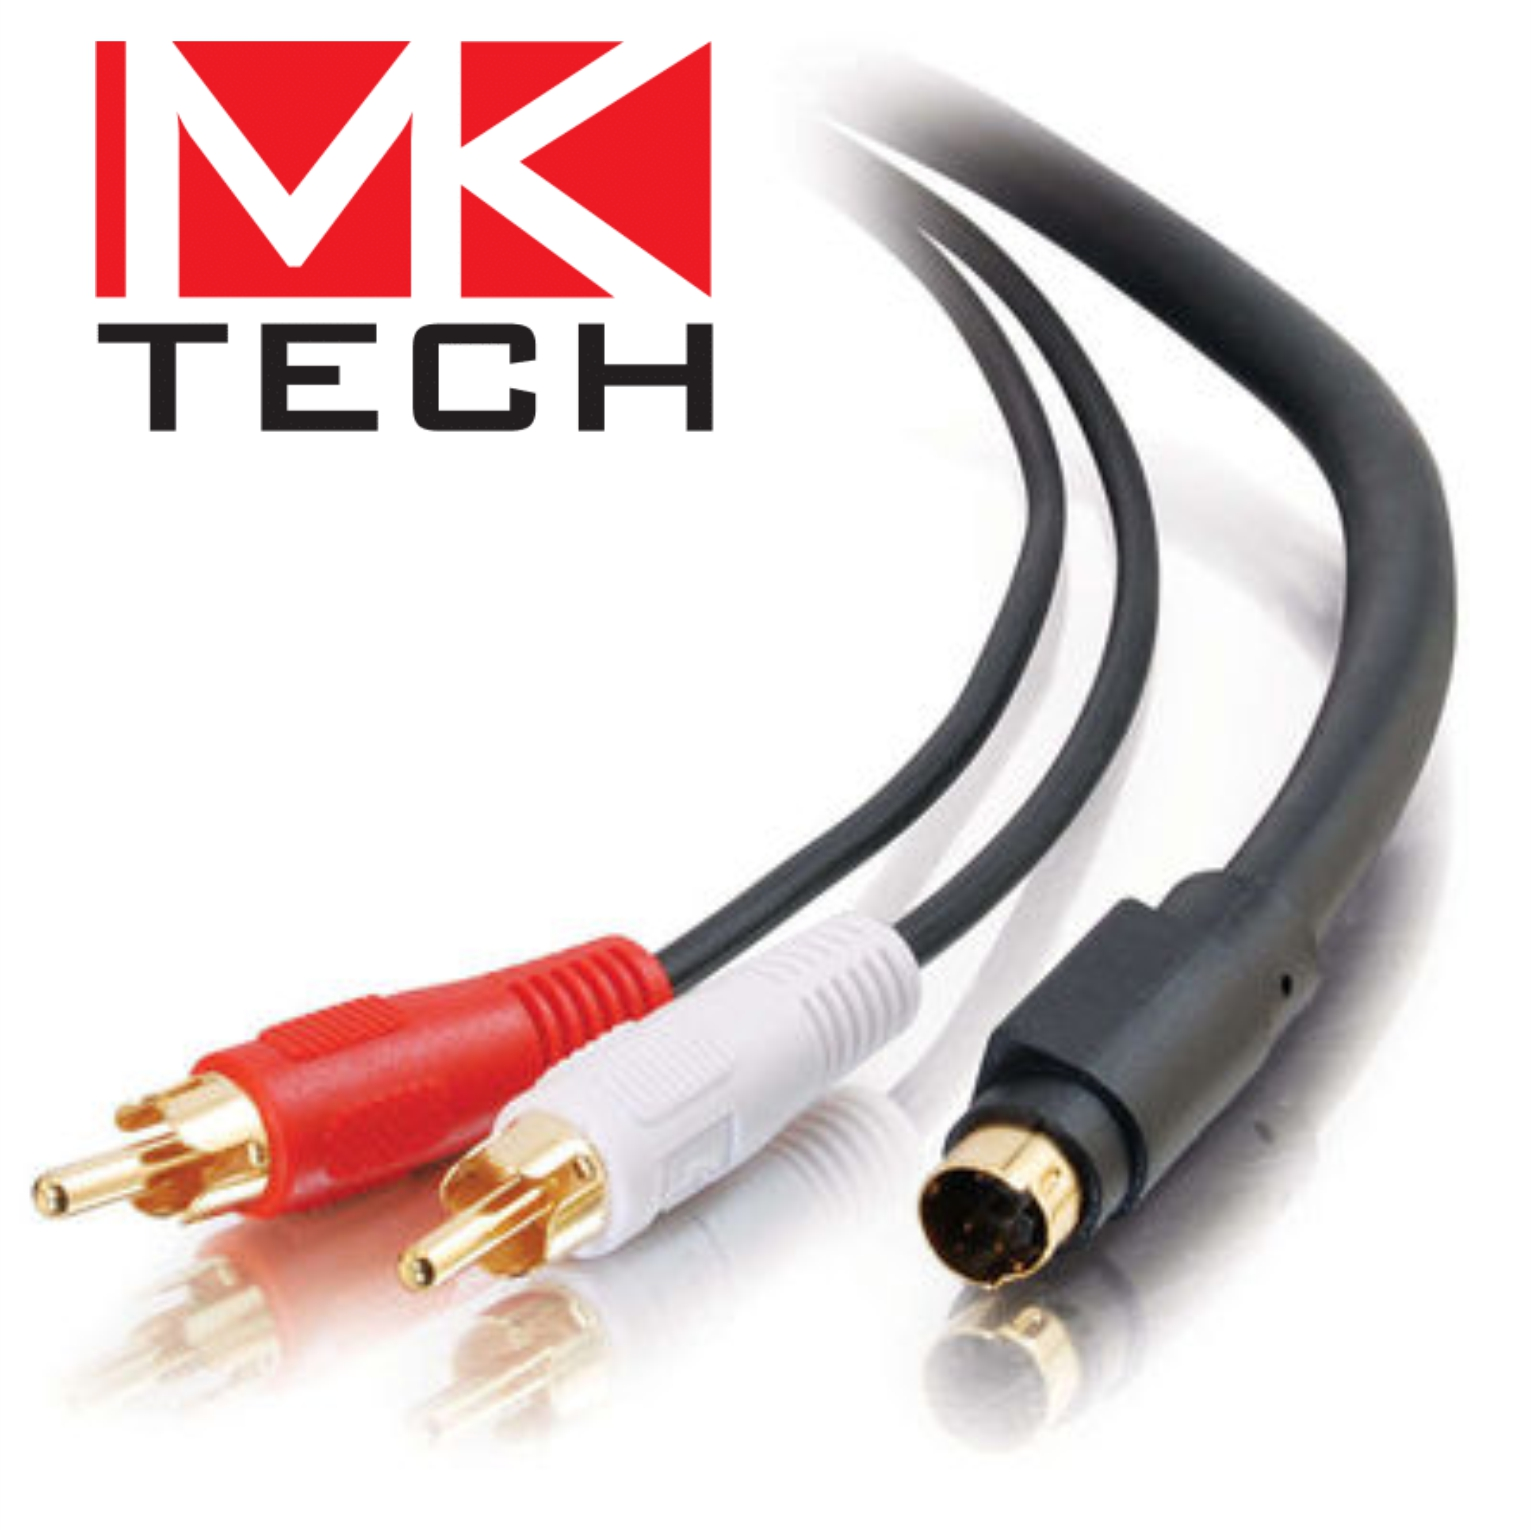 S-Video-M to Dual RCA-M Кабел (Y) 10m MKTECH